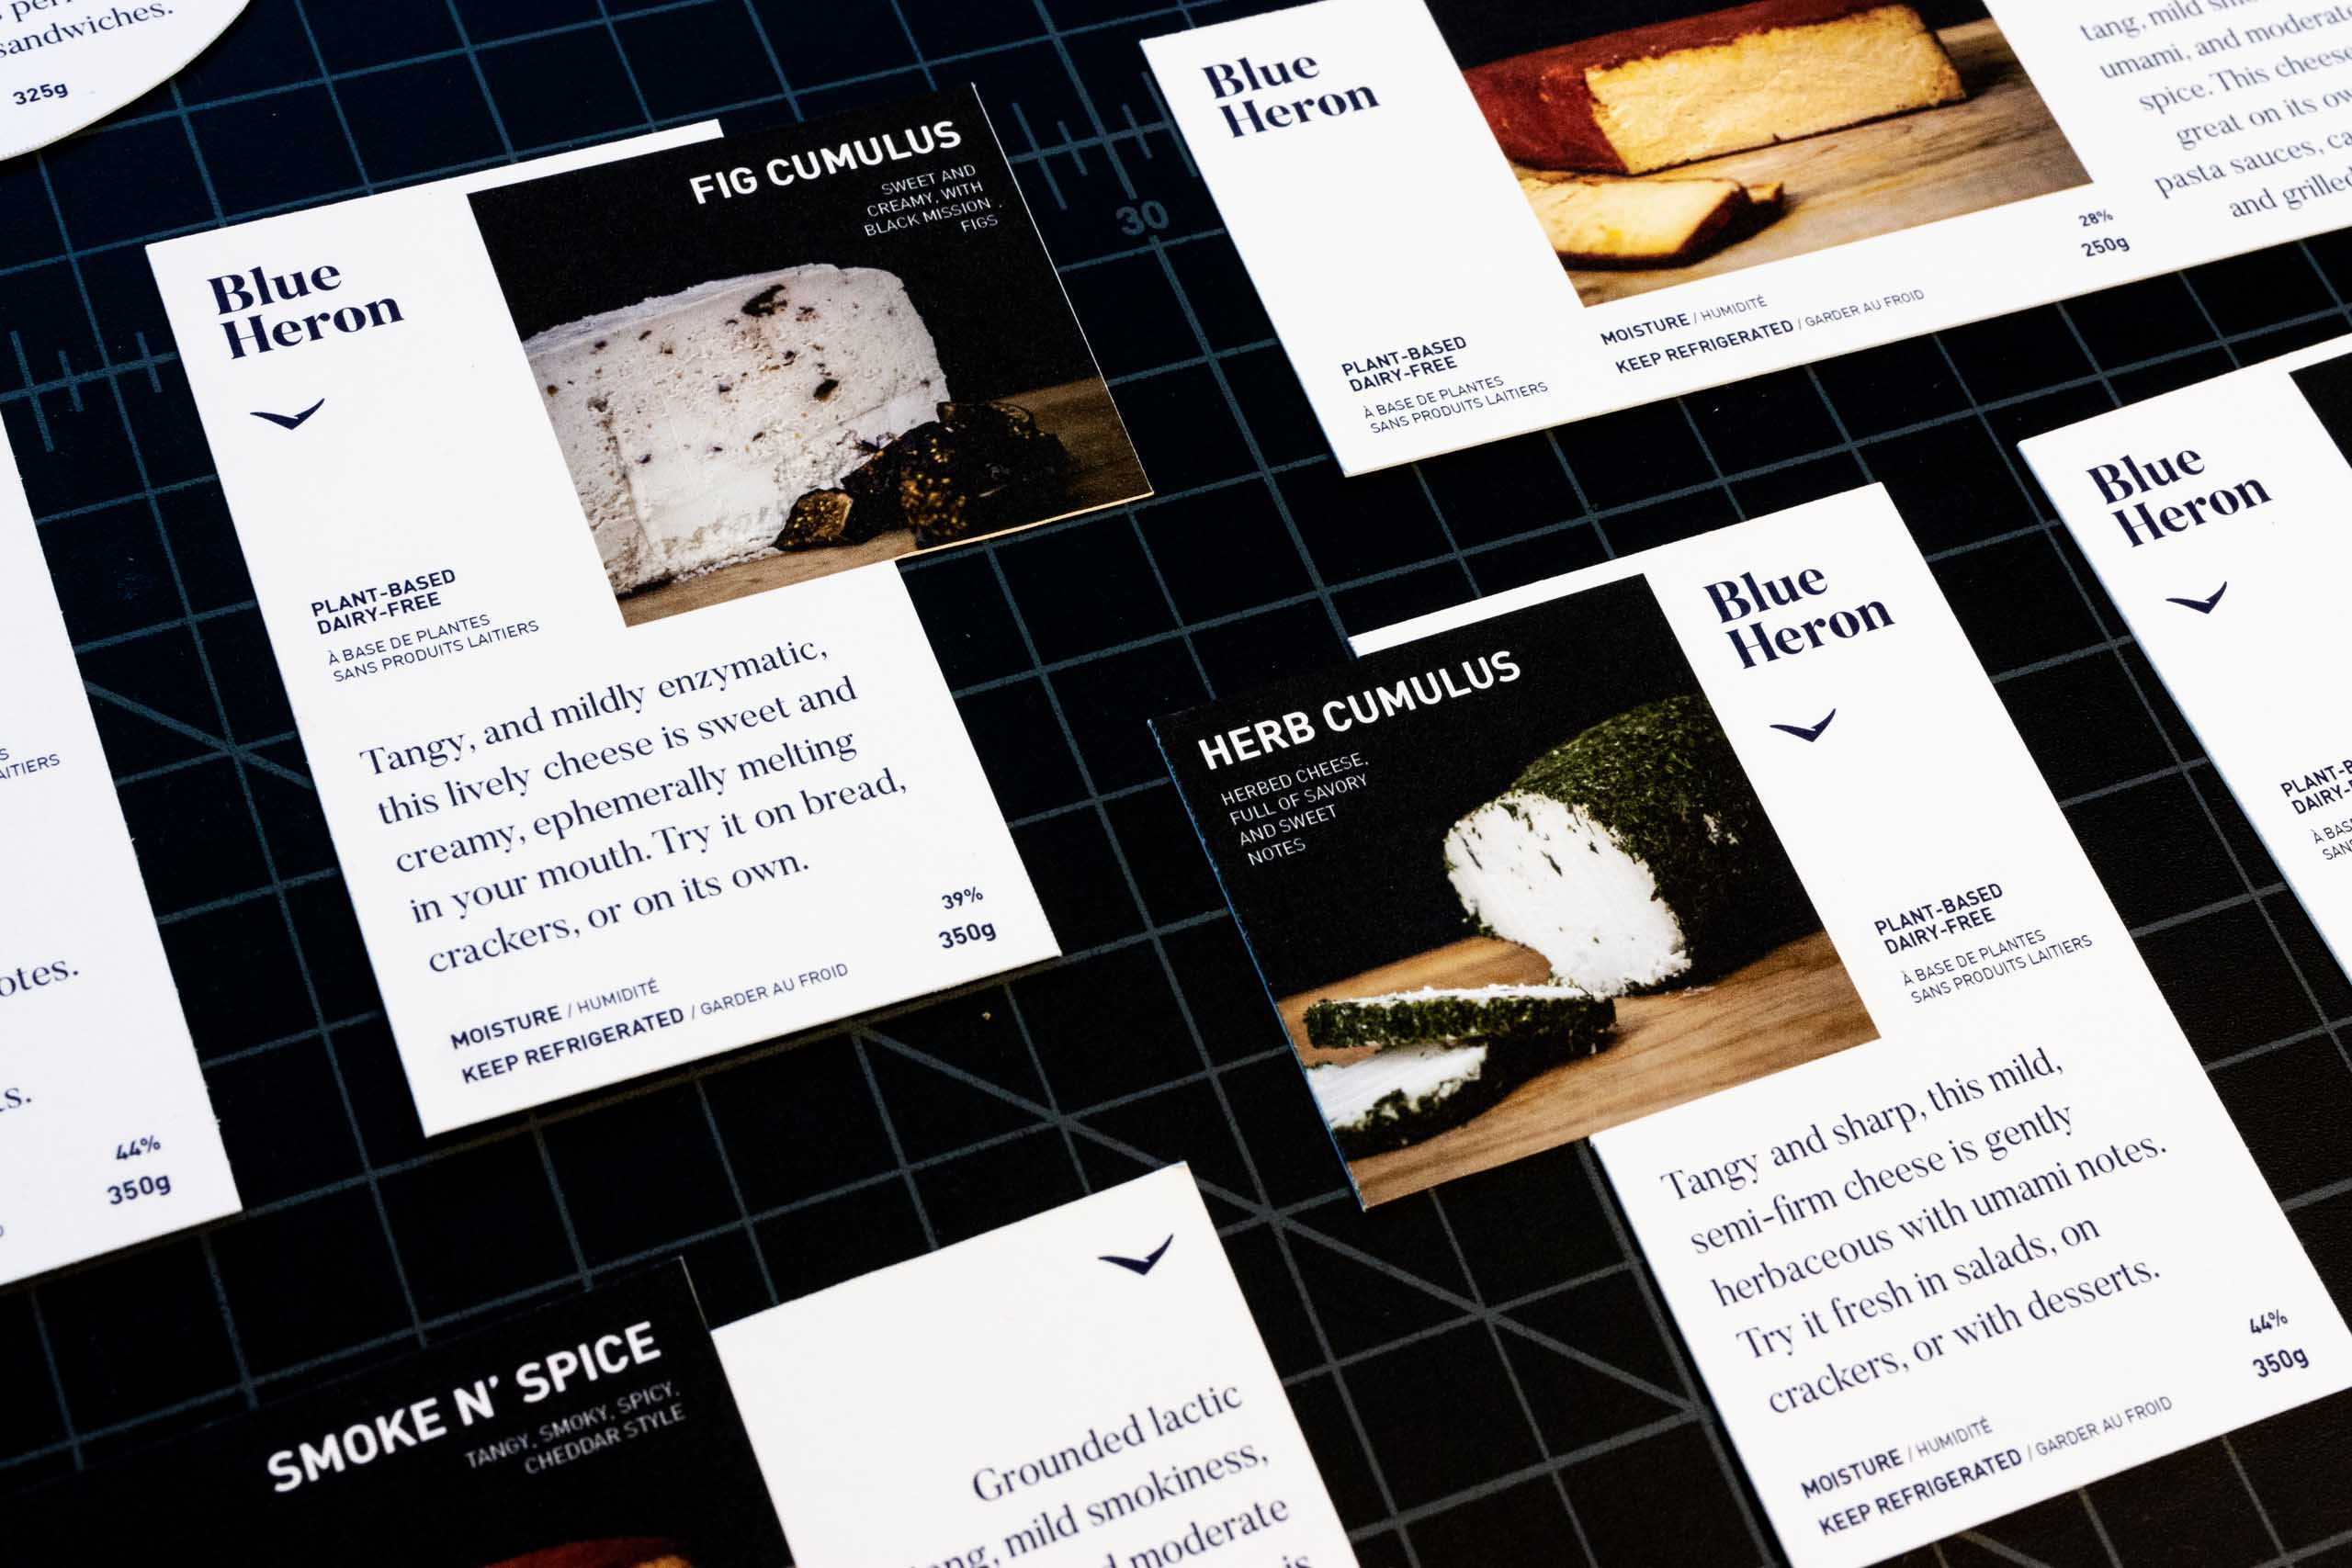 Close up of Fig Cumulus and Herb Cumulus cheese labels showing photography, and typography details — by Yagnyuk.